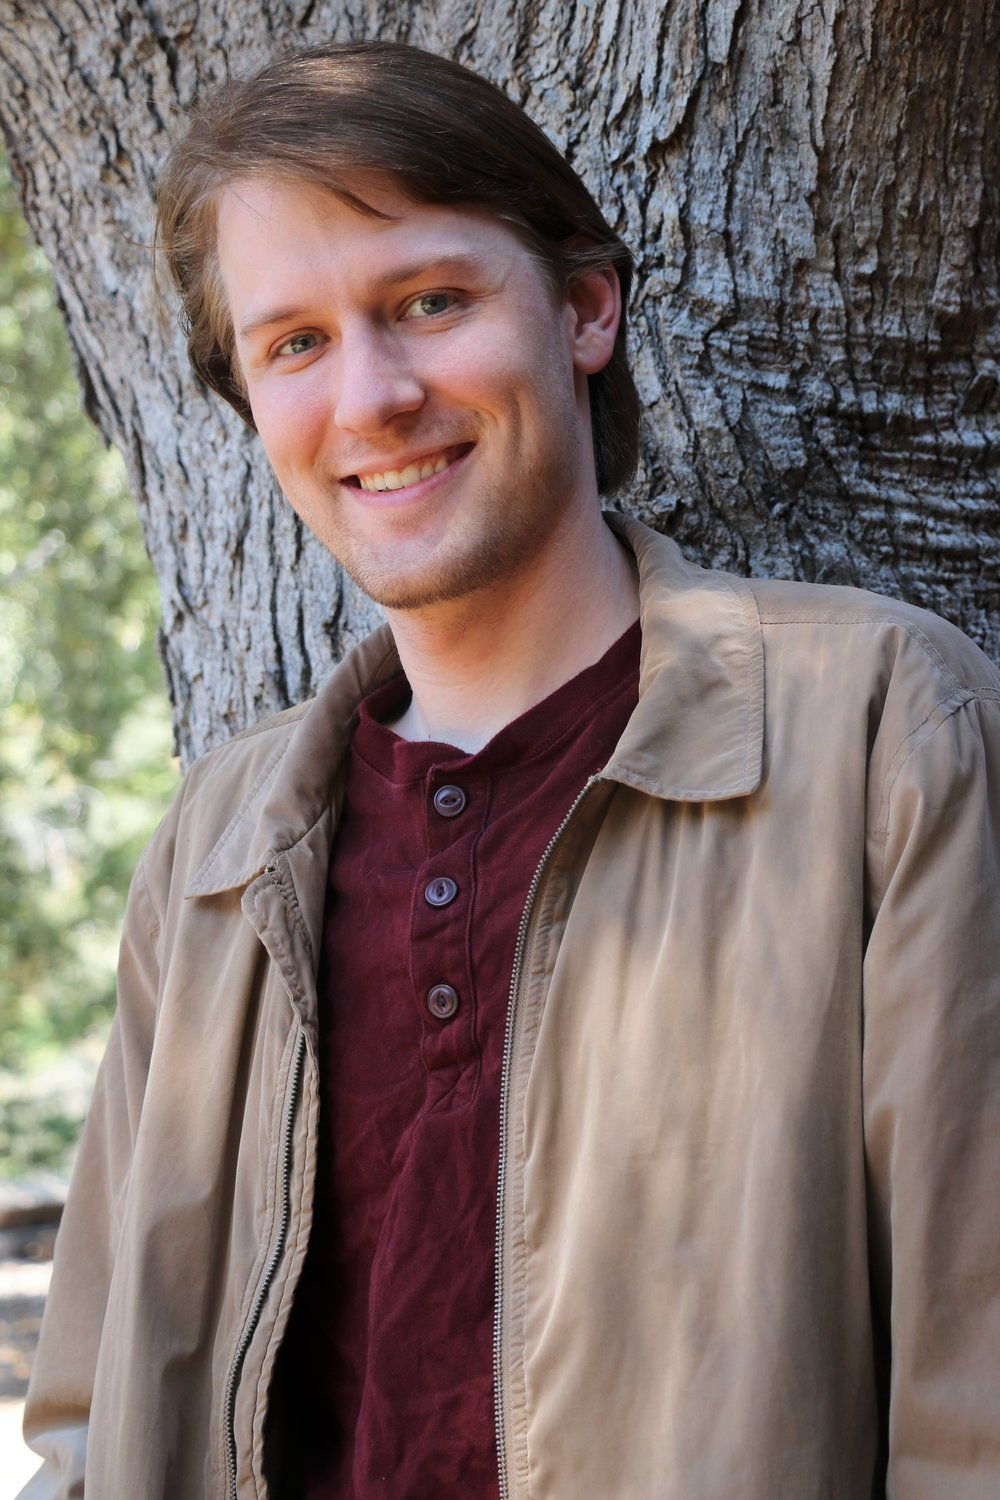 Josh is a software specialist in Artificial Intelligence and Security/Cryptography and has over two years' experience supporting SQL databases writing scripts in Ruby/Bash to sync specific elements of the databases with Rally/JIRA  BS-Computer Science, UCSD